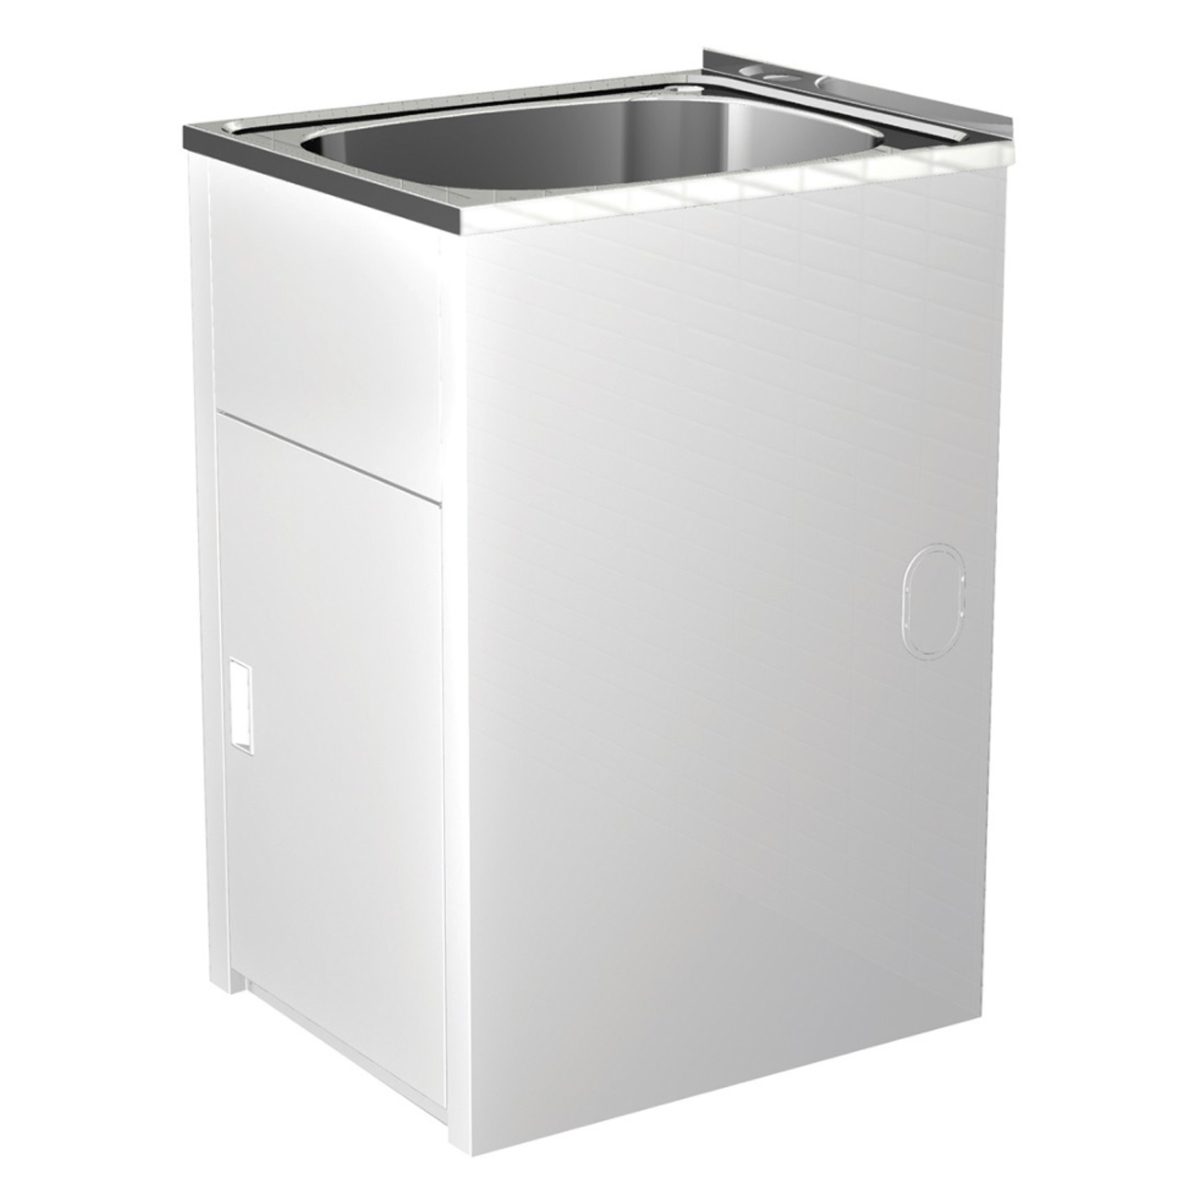 Clark F6111 Utility 42 Litre Compact Laundry Tub & Cabinet